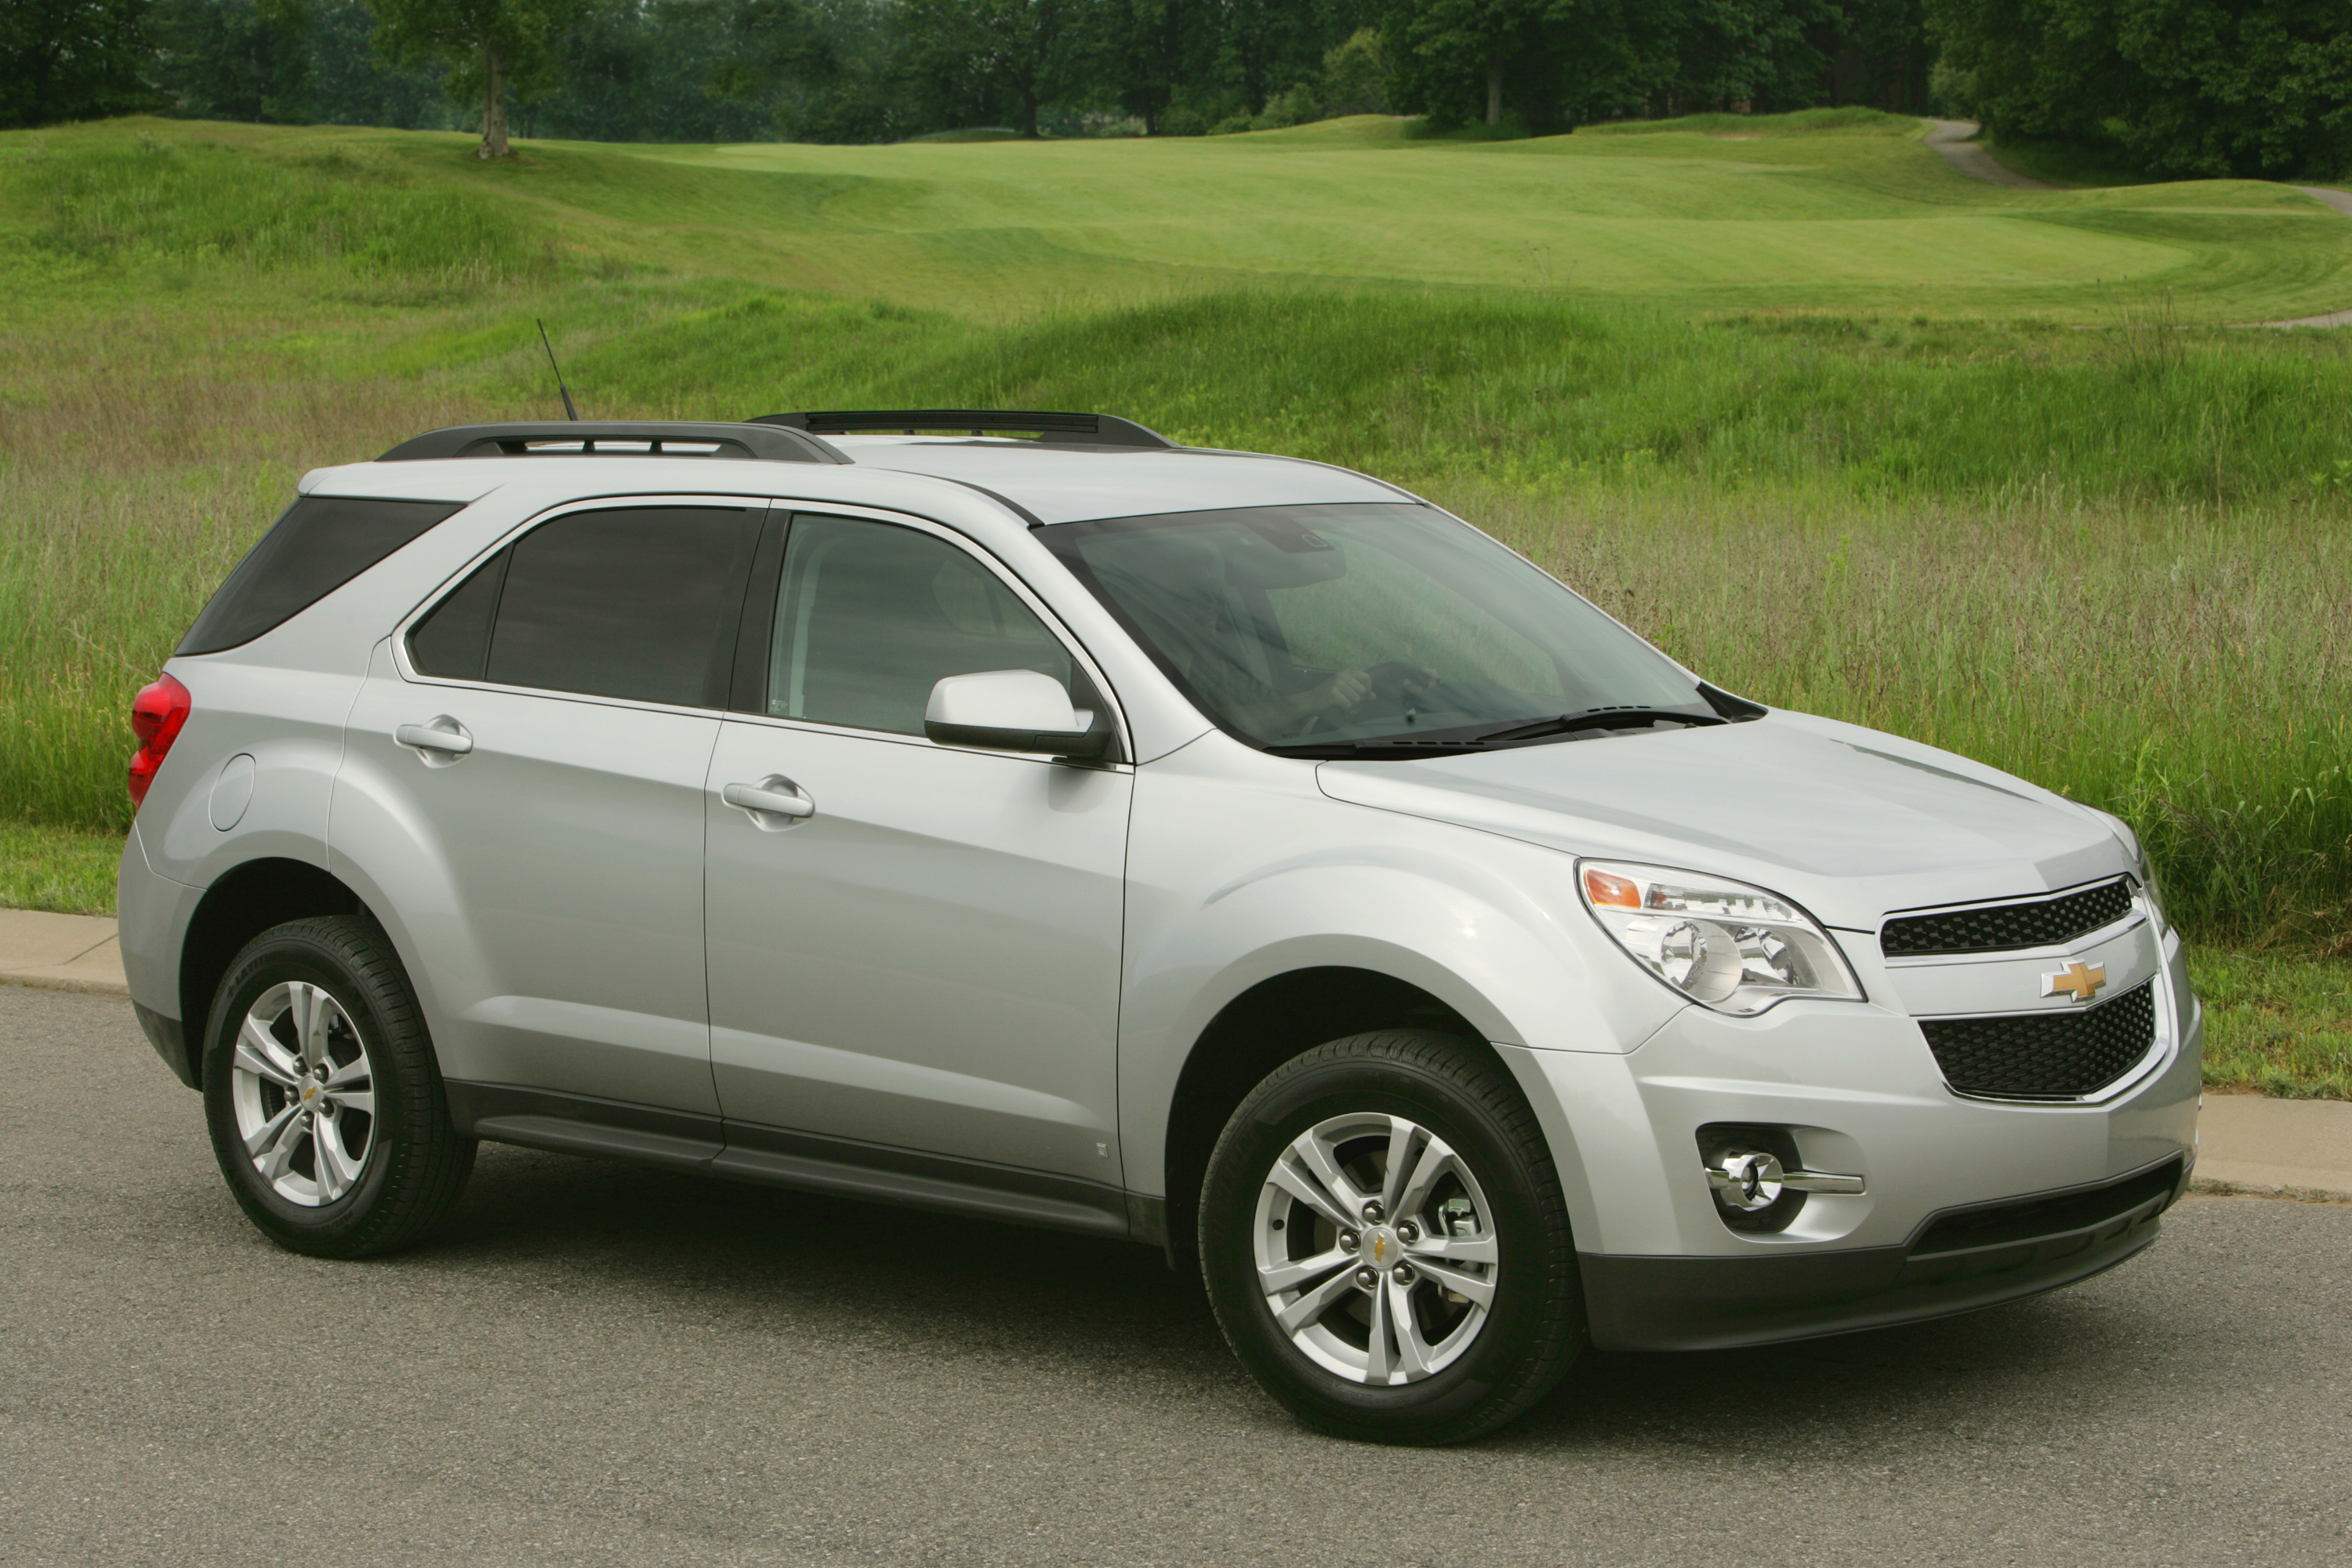 Chevrolet Equinox mod model